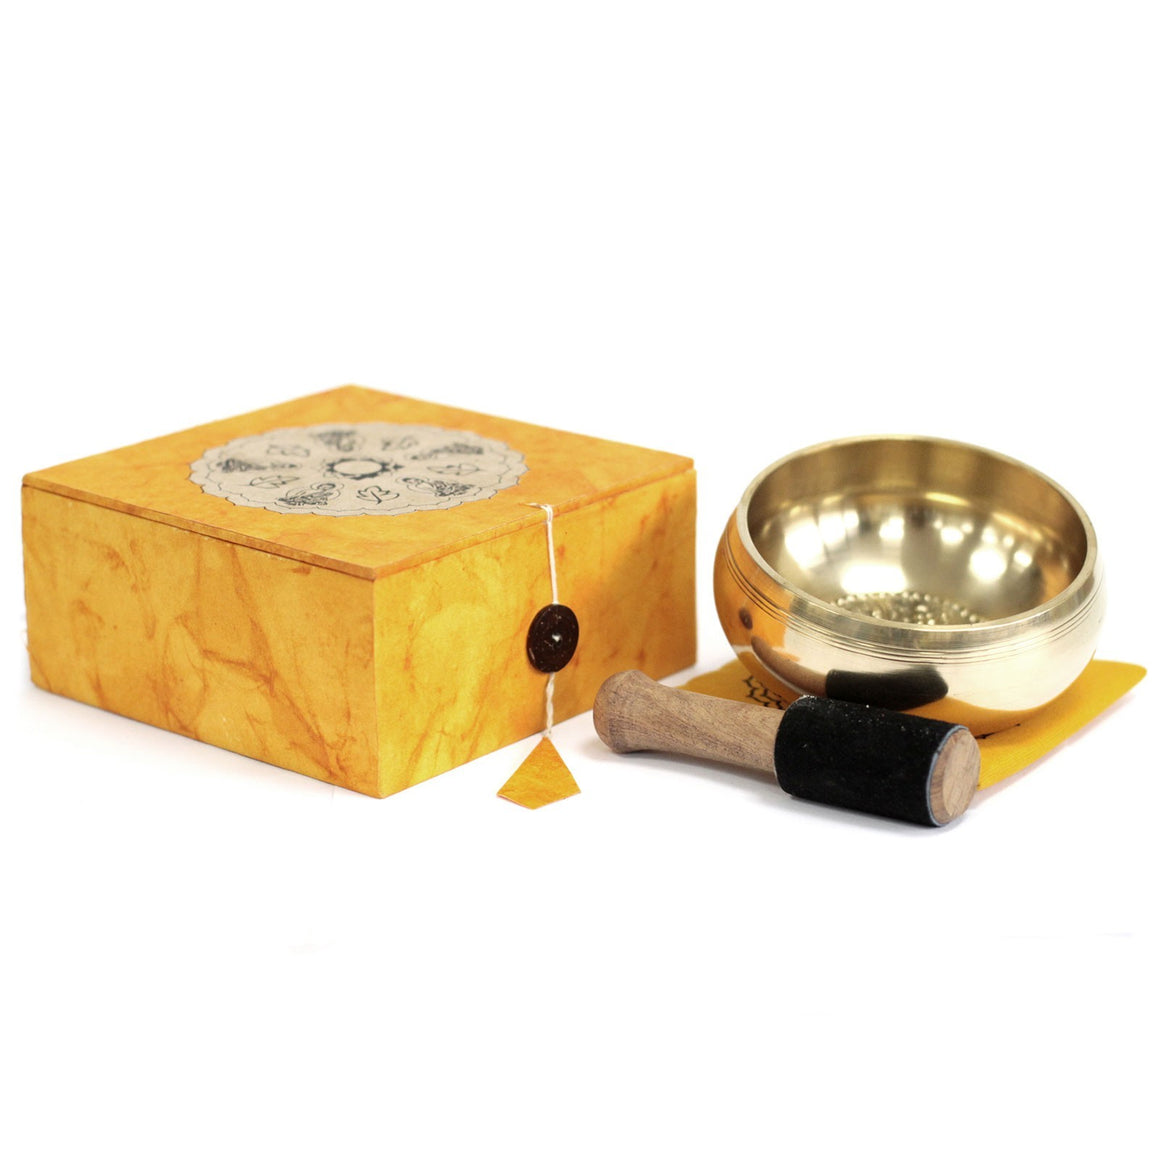 Special Meditation Tibetan Singing Bowl Set